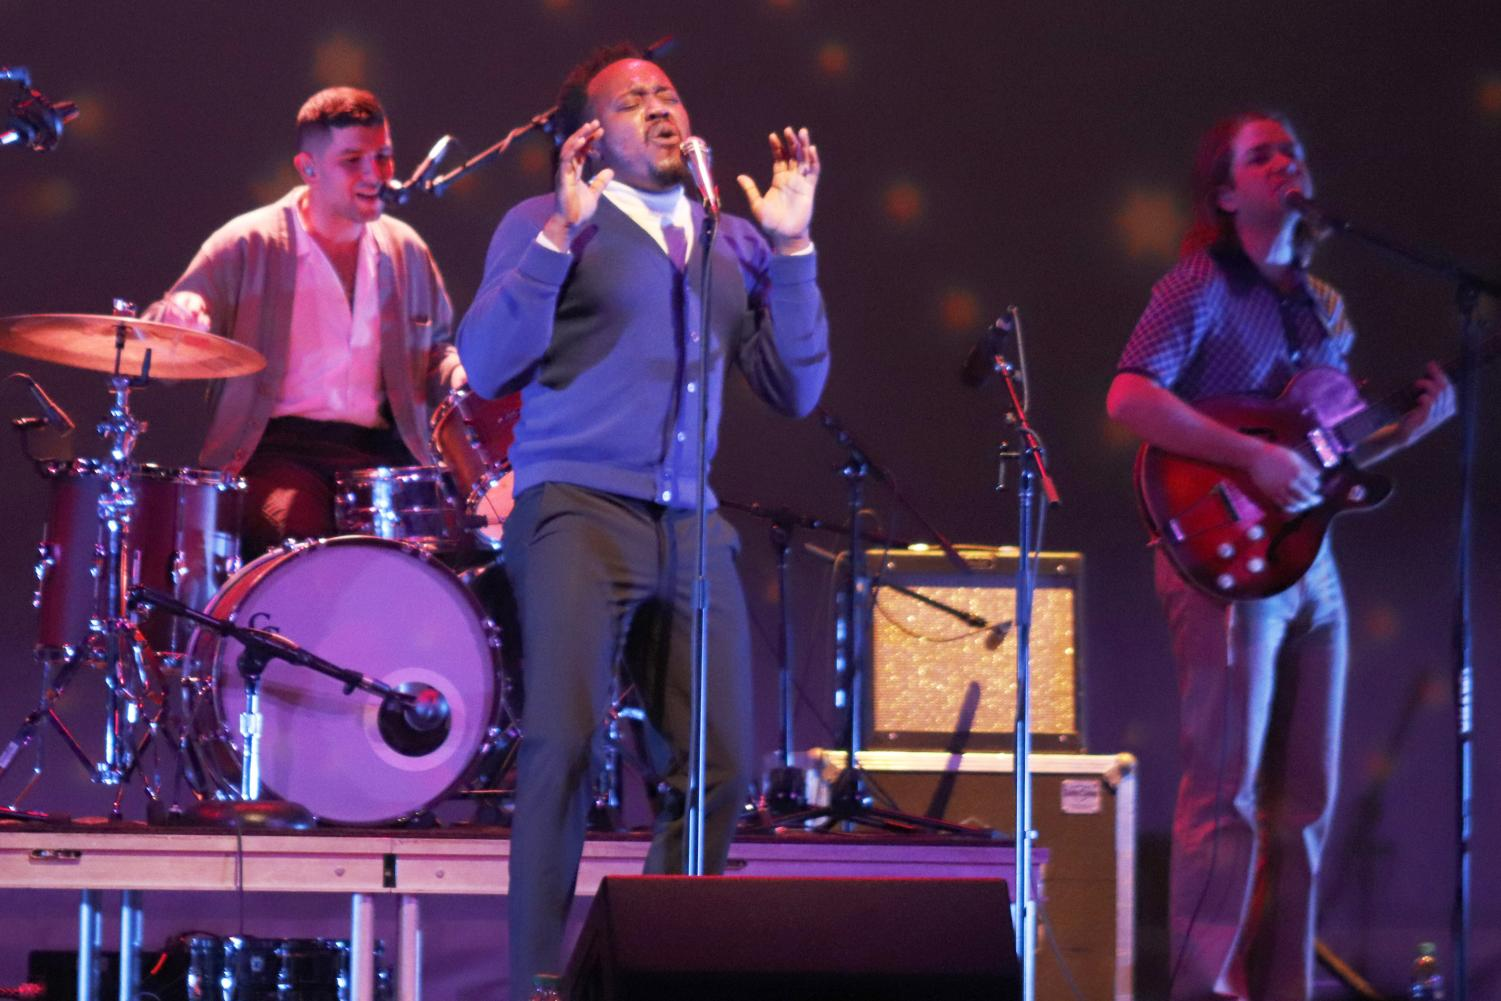 Following their international tour, Durand Jones and the Indications performed at the Columbia Theatre for the Performing Arts. The concert was sponsored in part by the Alumni Association. Maggie Tregre/The Lion's Roar